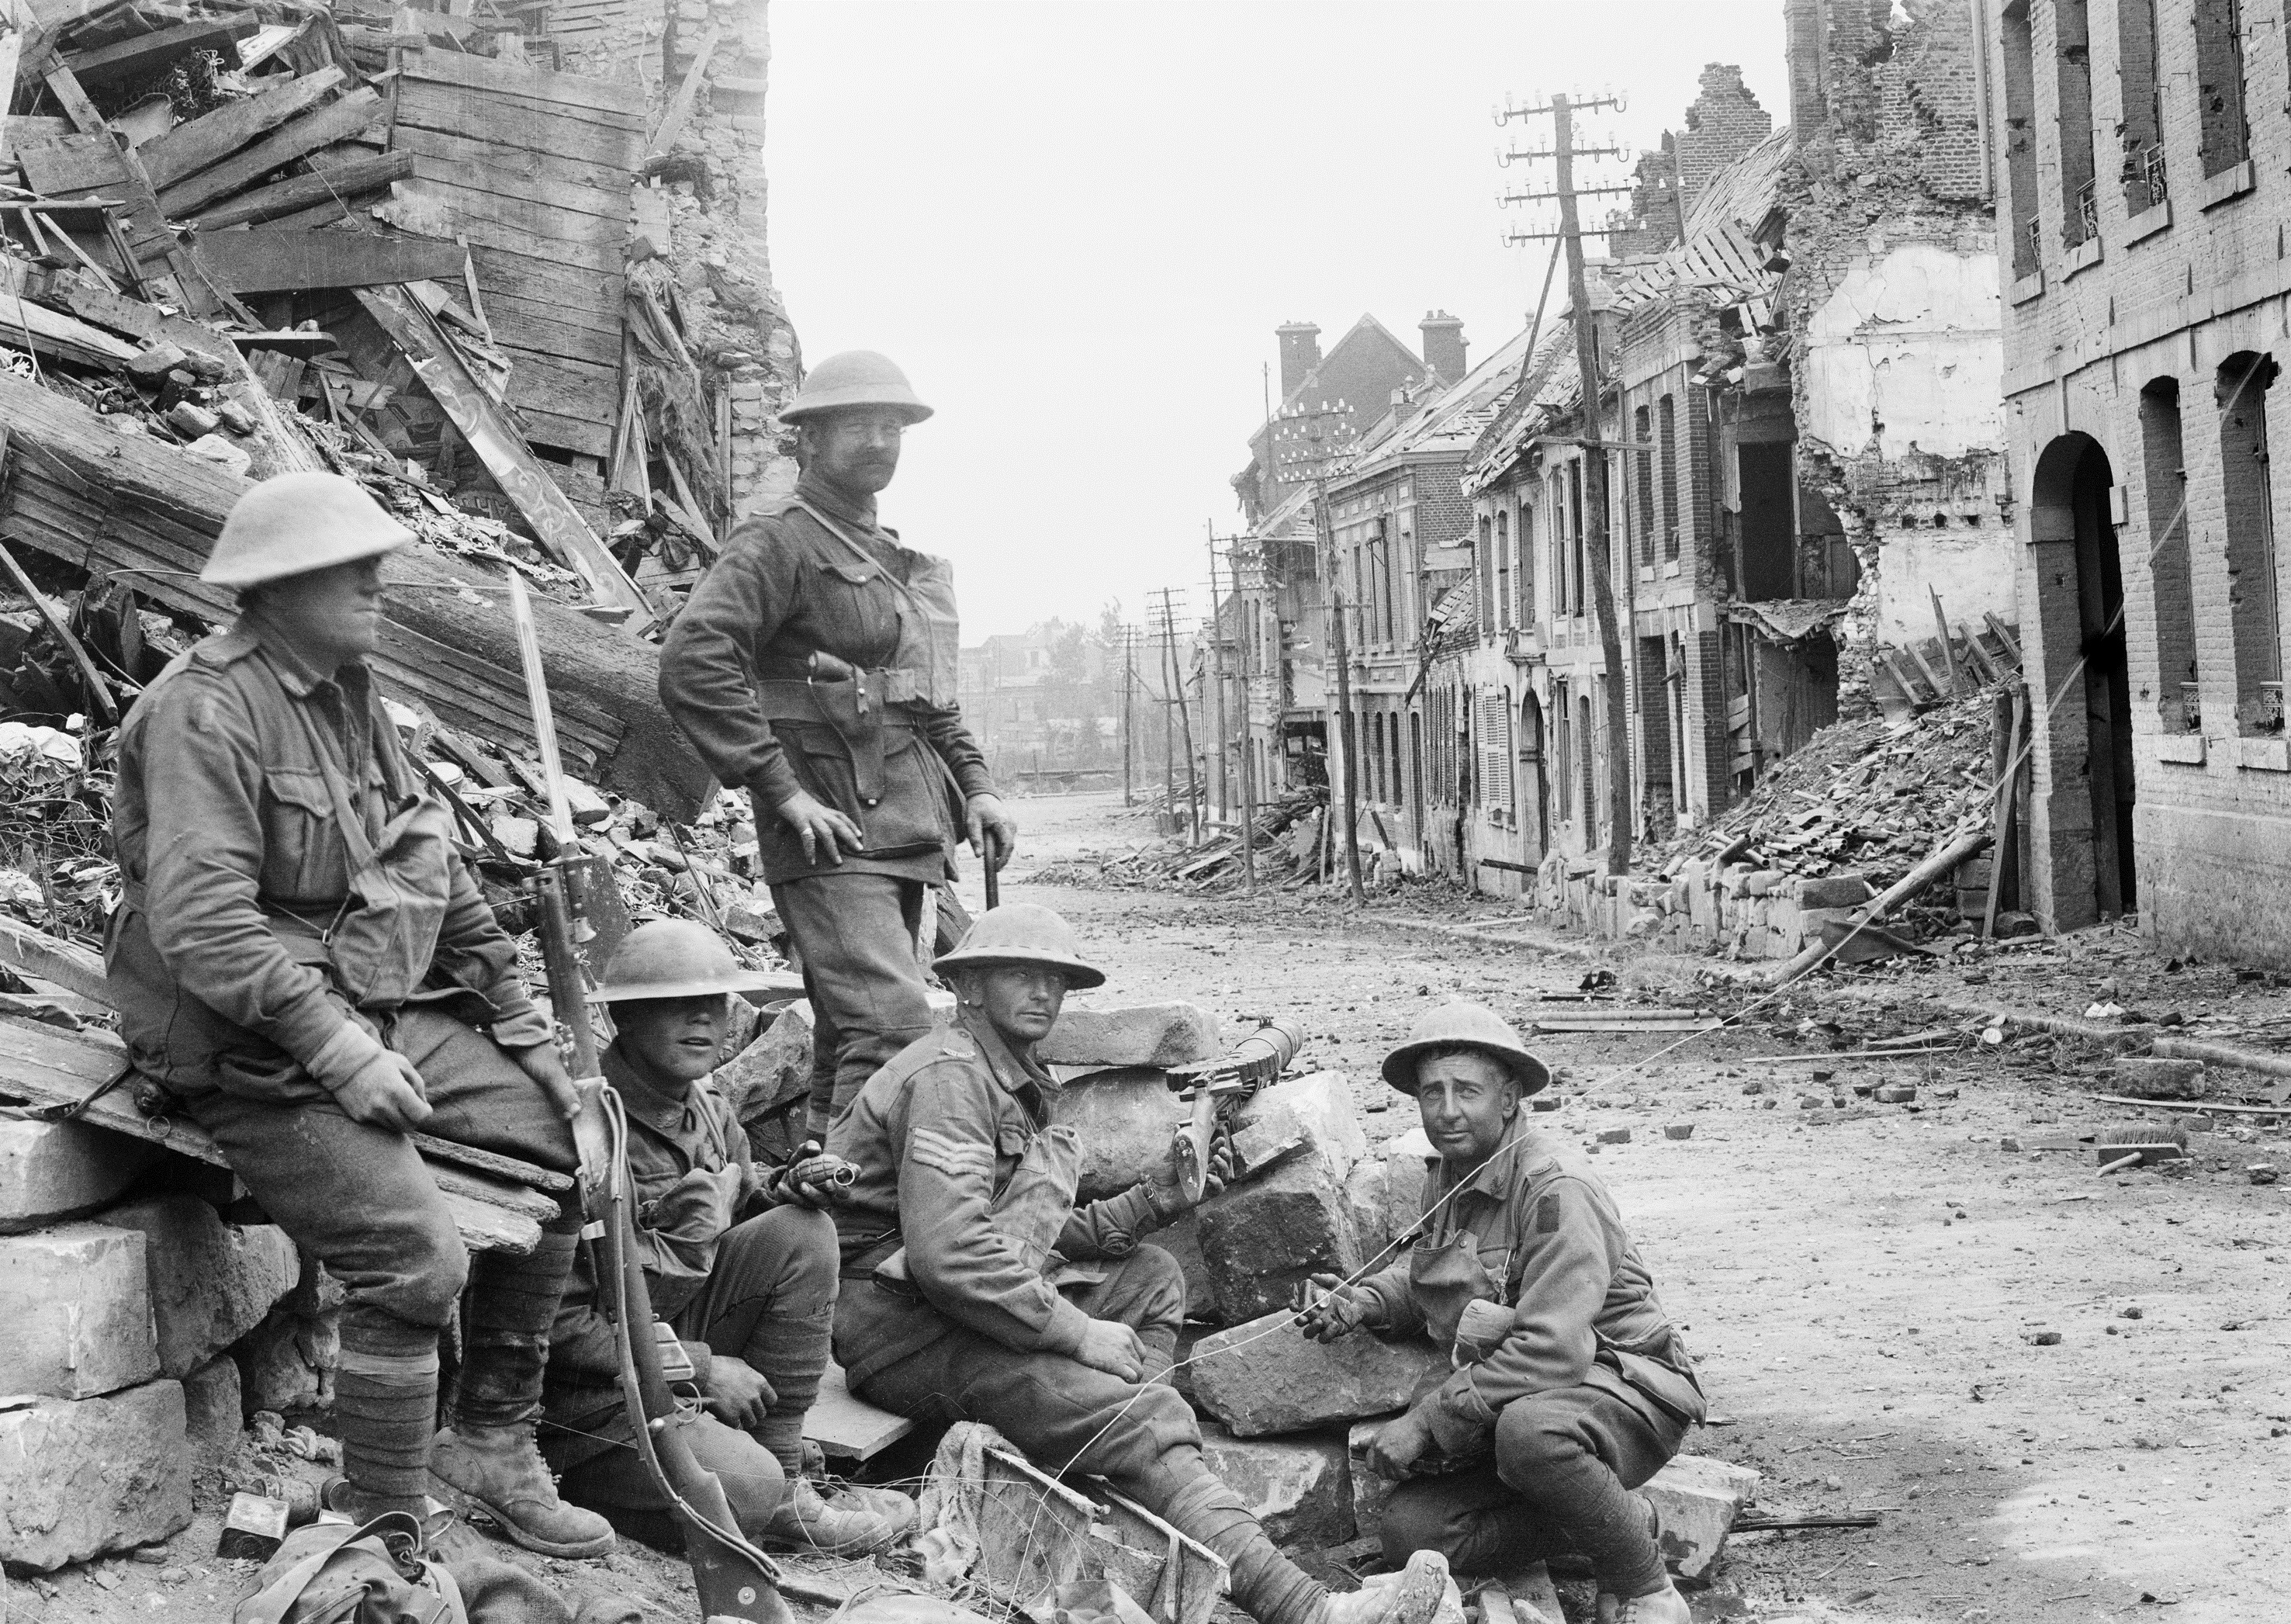 Members of the 54th Infantry Battalion in Peronne, the day after the battle, 2 October 1918; image courtesy of the Australian War Memorial.